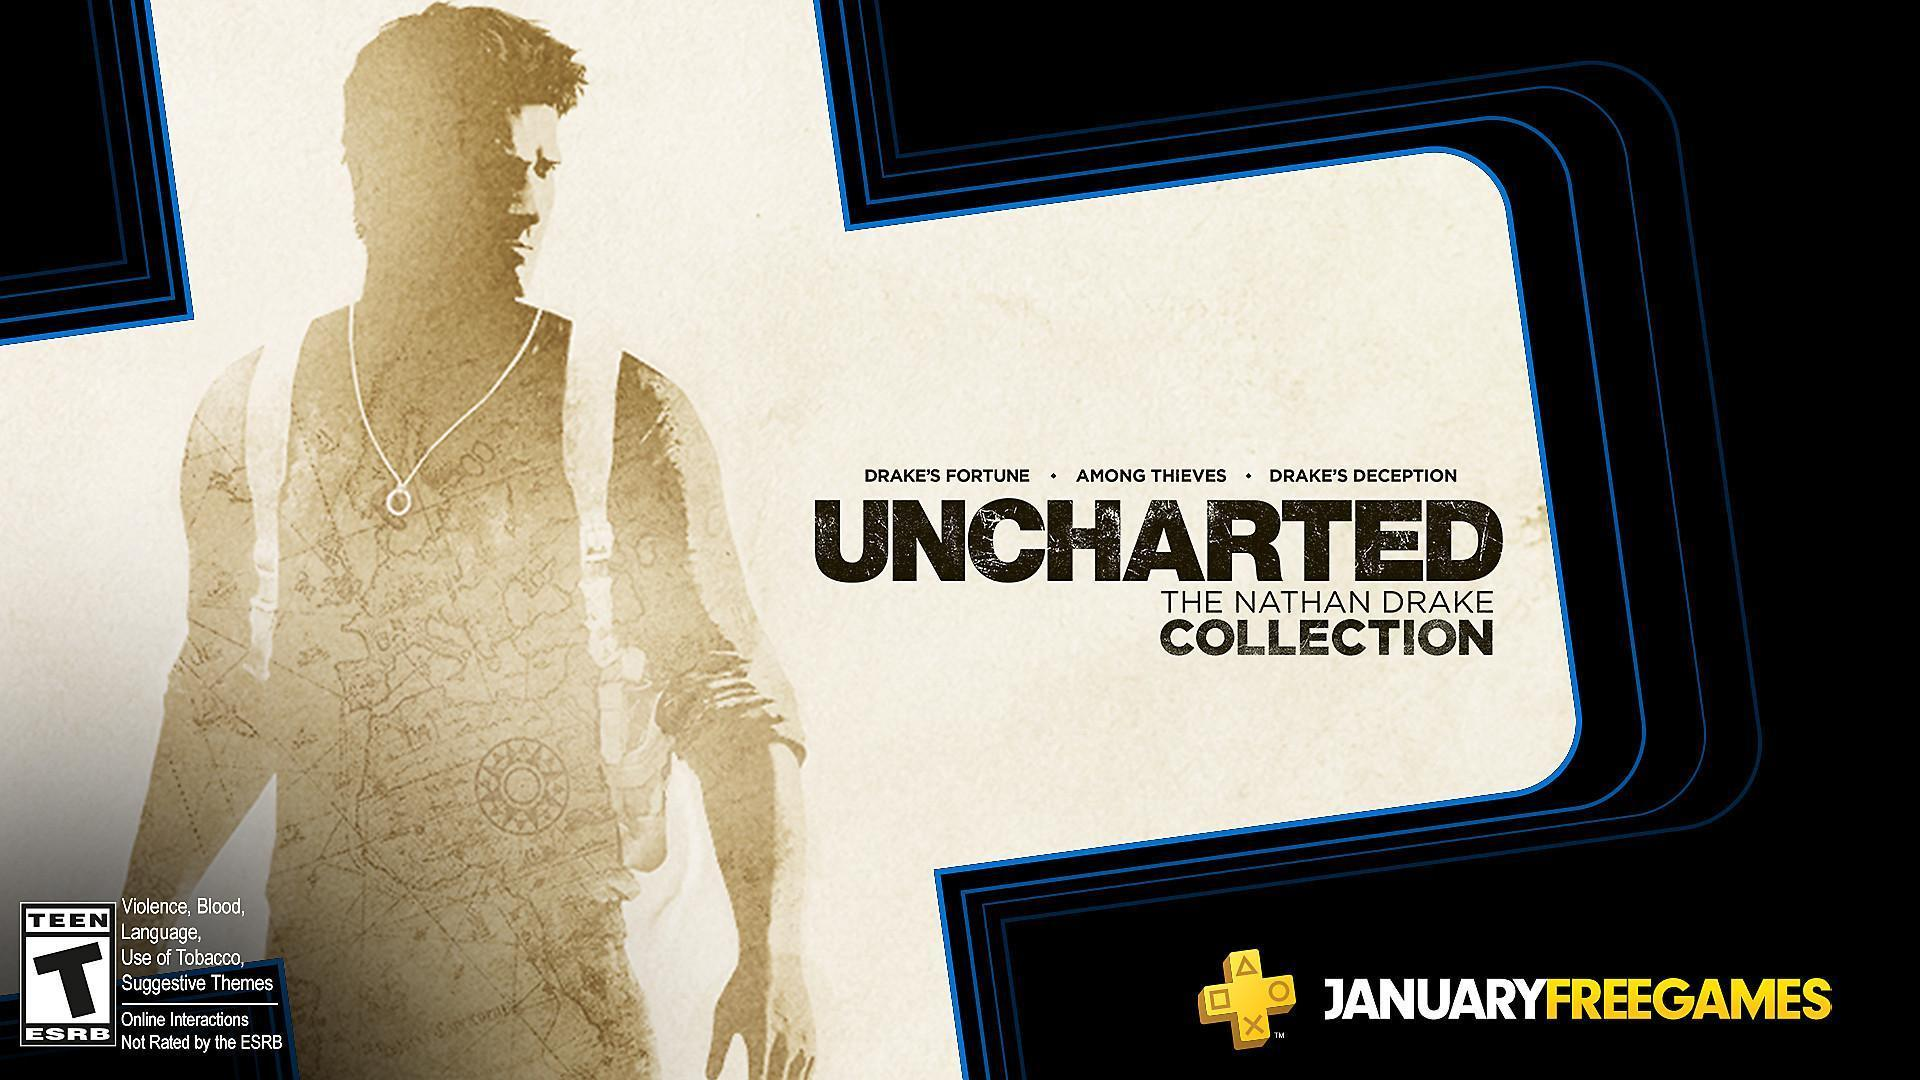 Playstation January S Free Ps Plus Games Uncharted The Nathan Drake Collection Goat Simulator Video Games Articles